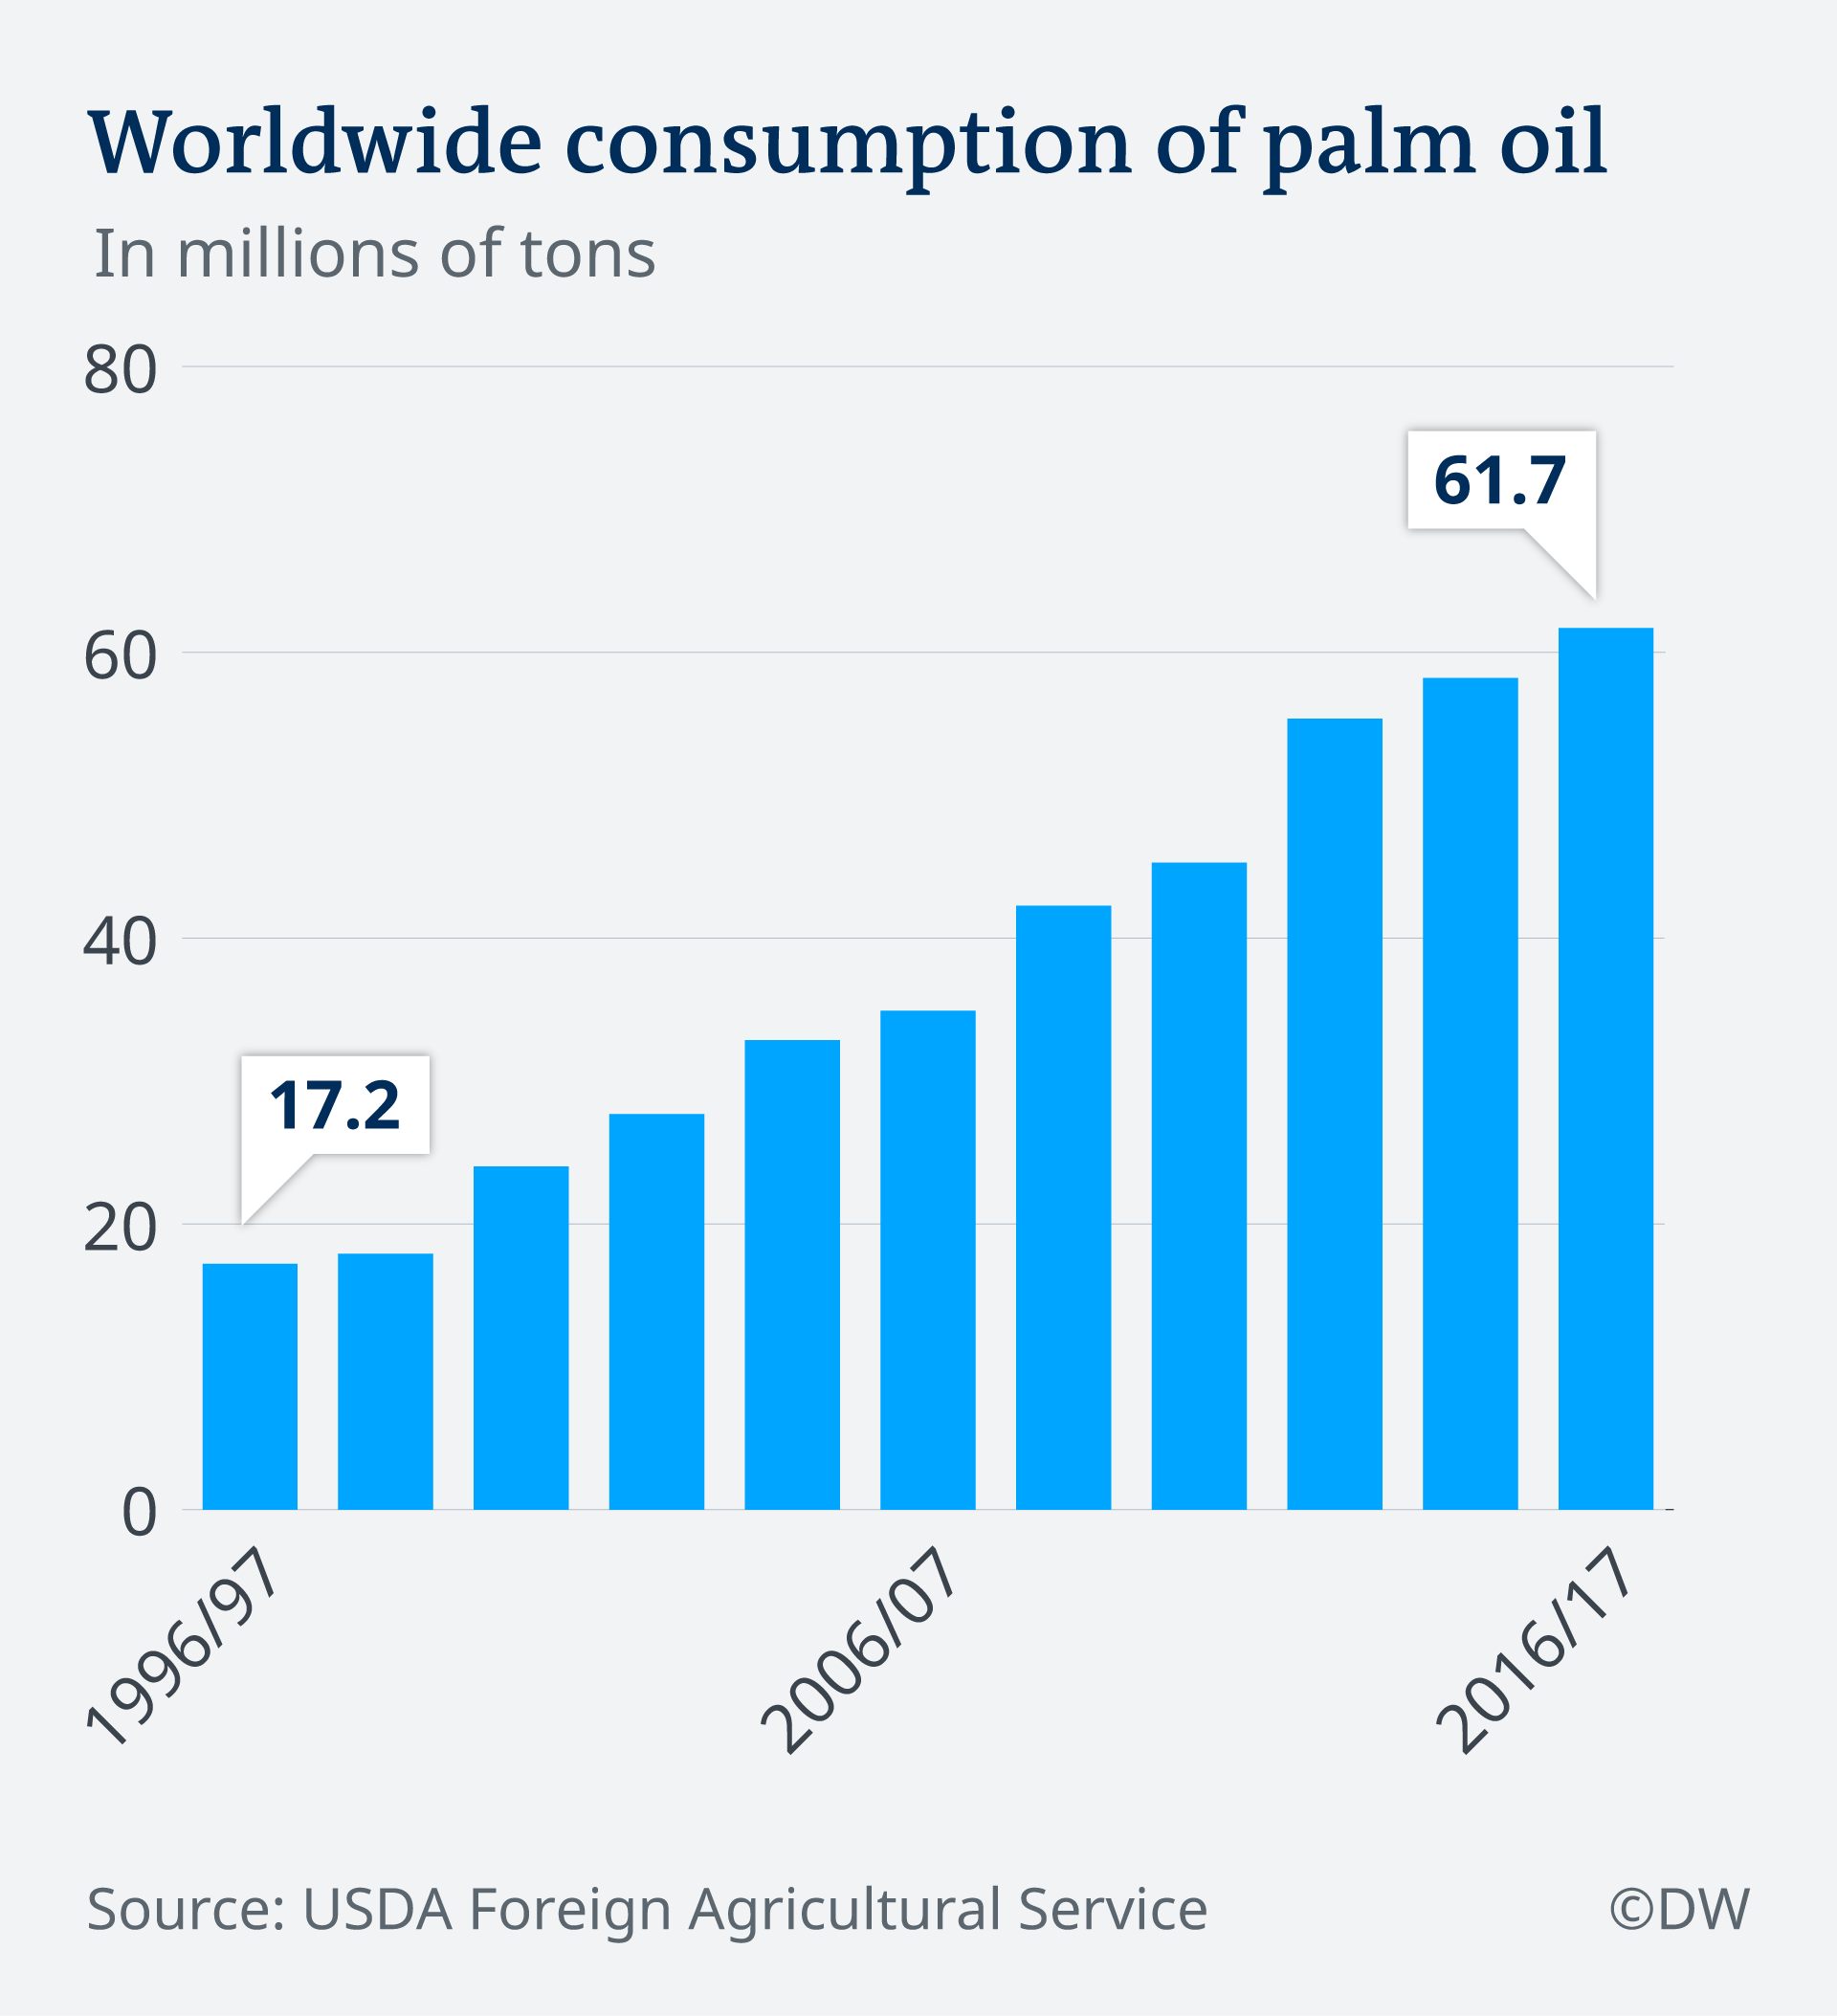 An infographic showing worldwide consumption of palm oil from 1996-2017